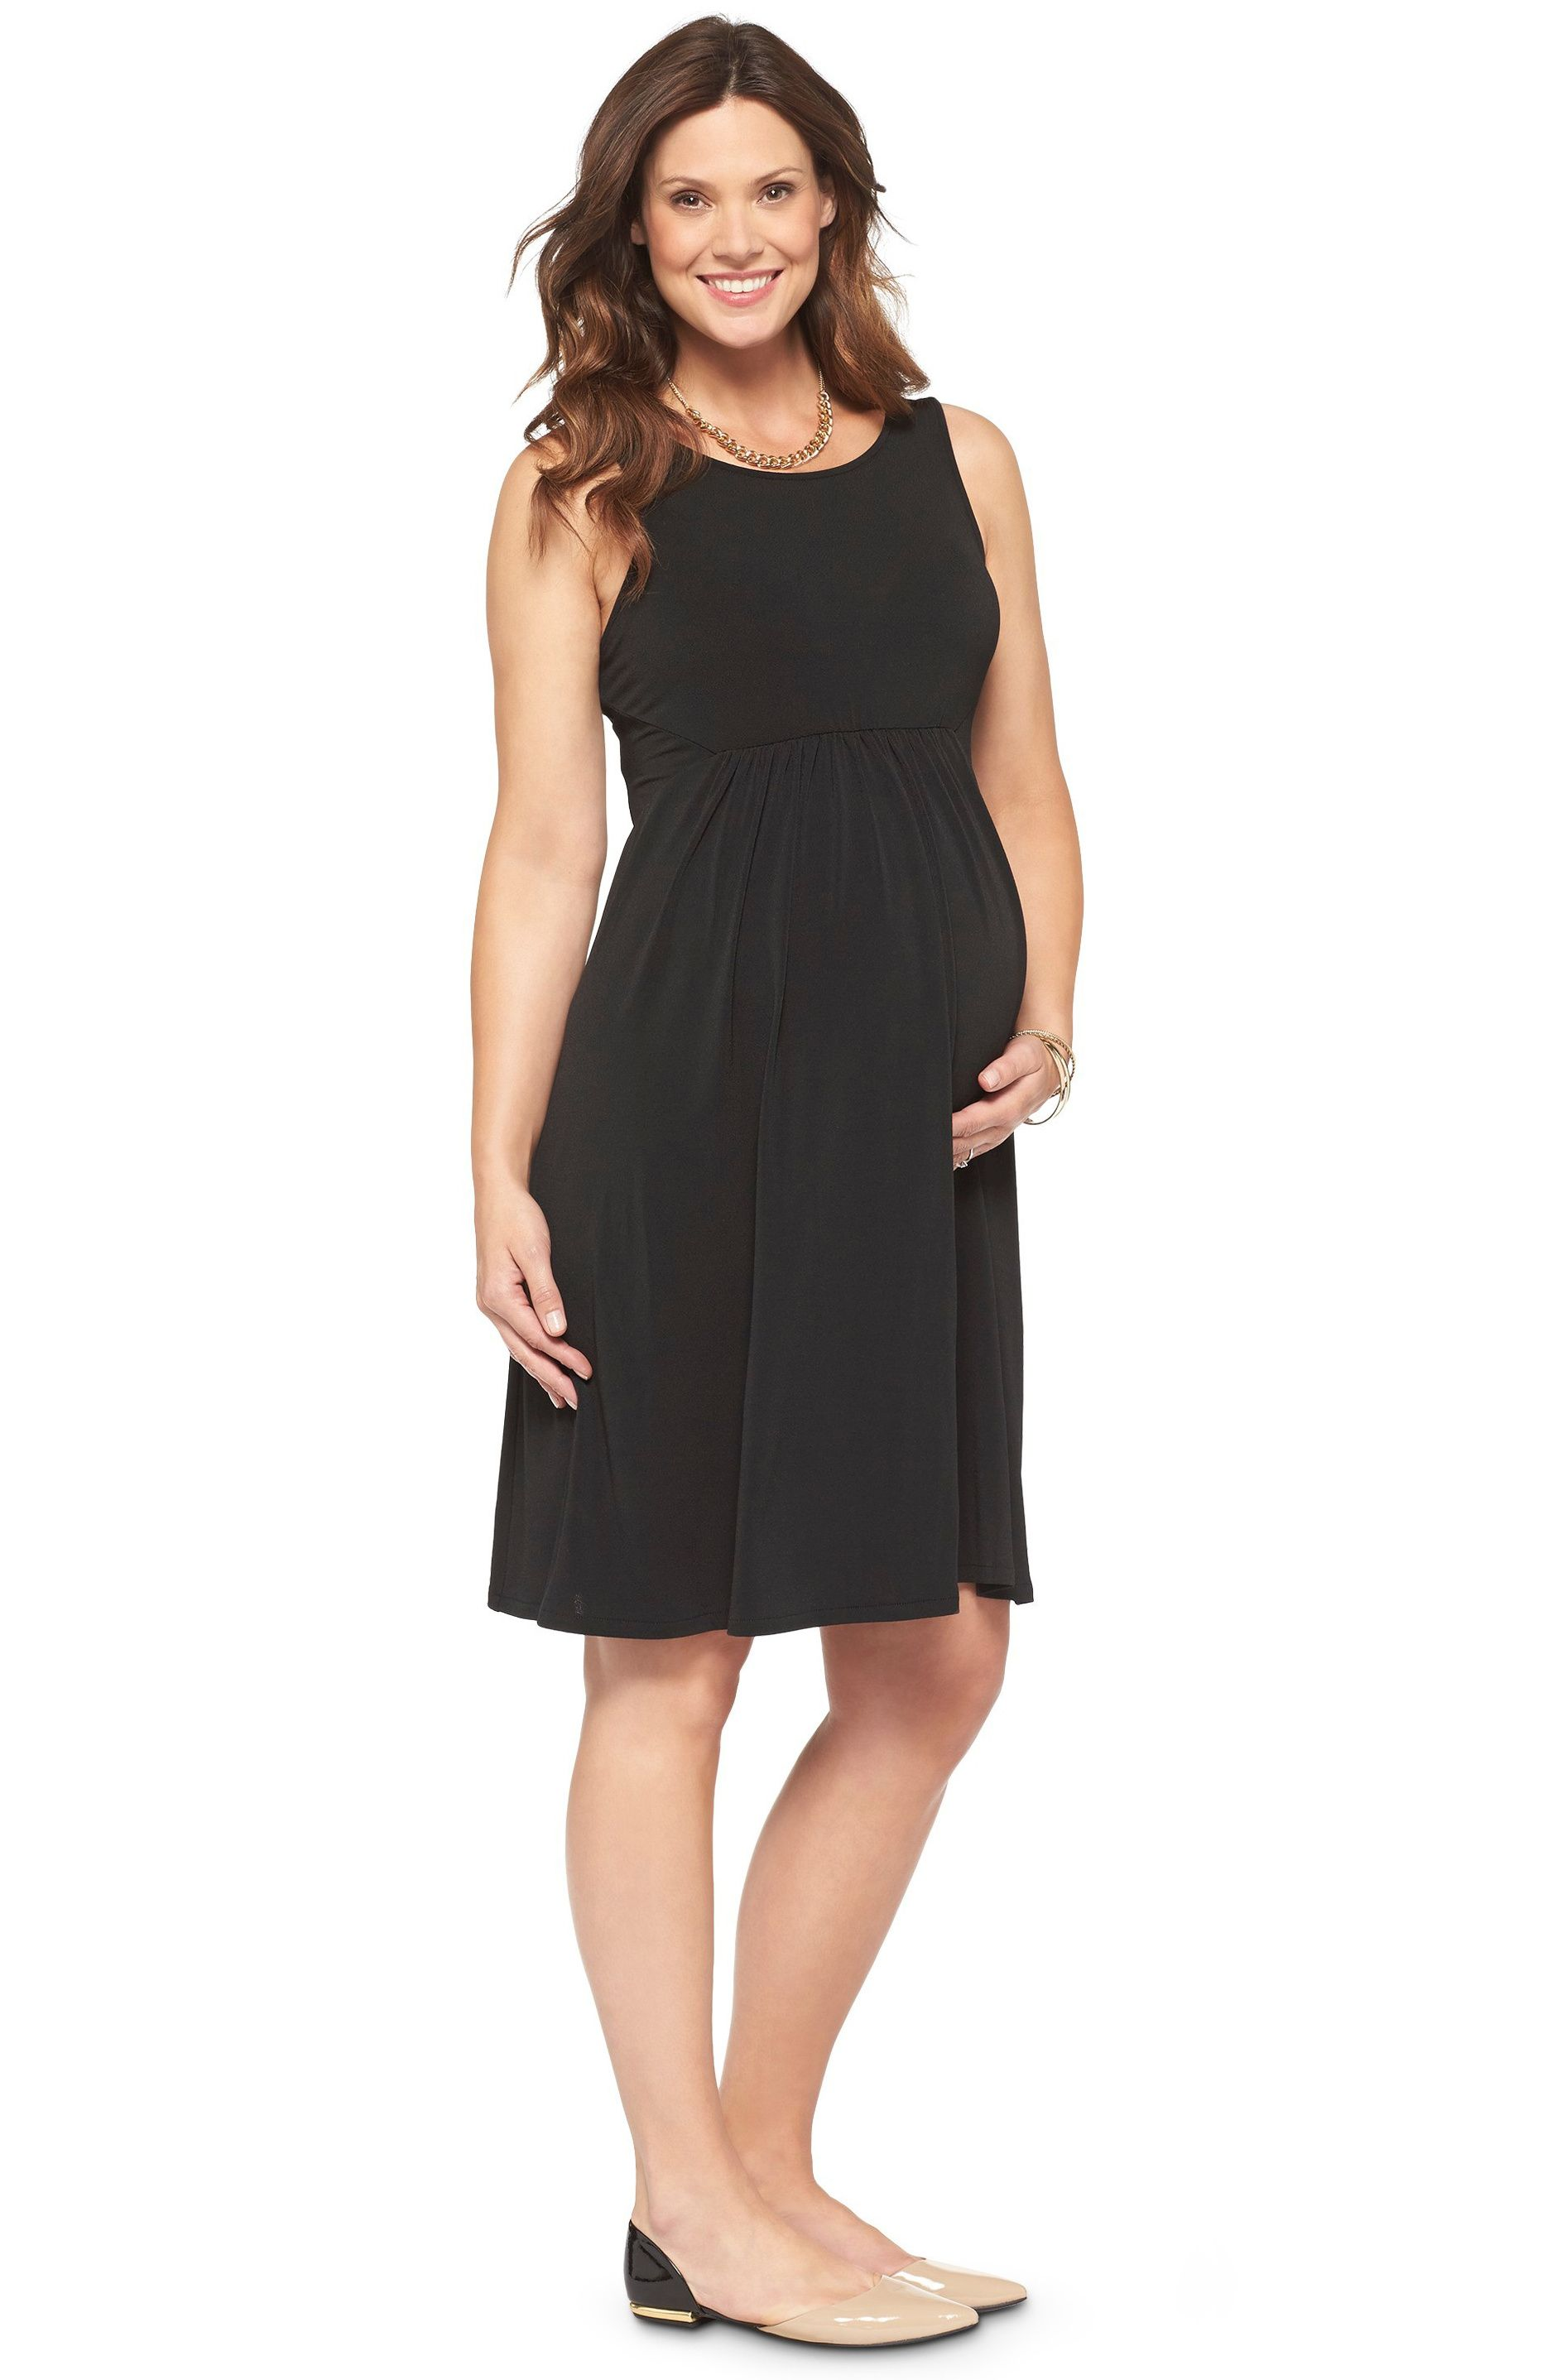 Maternity dresses for weddings target